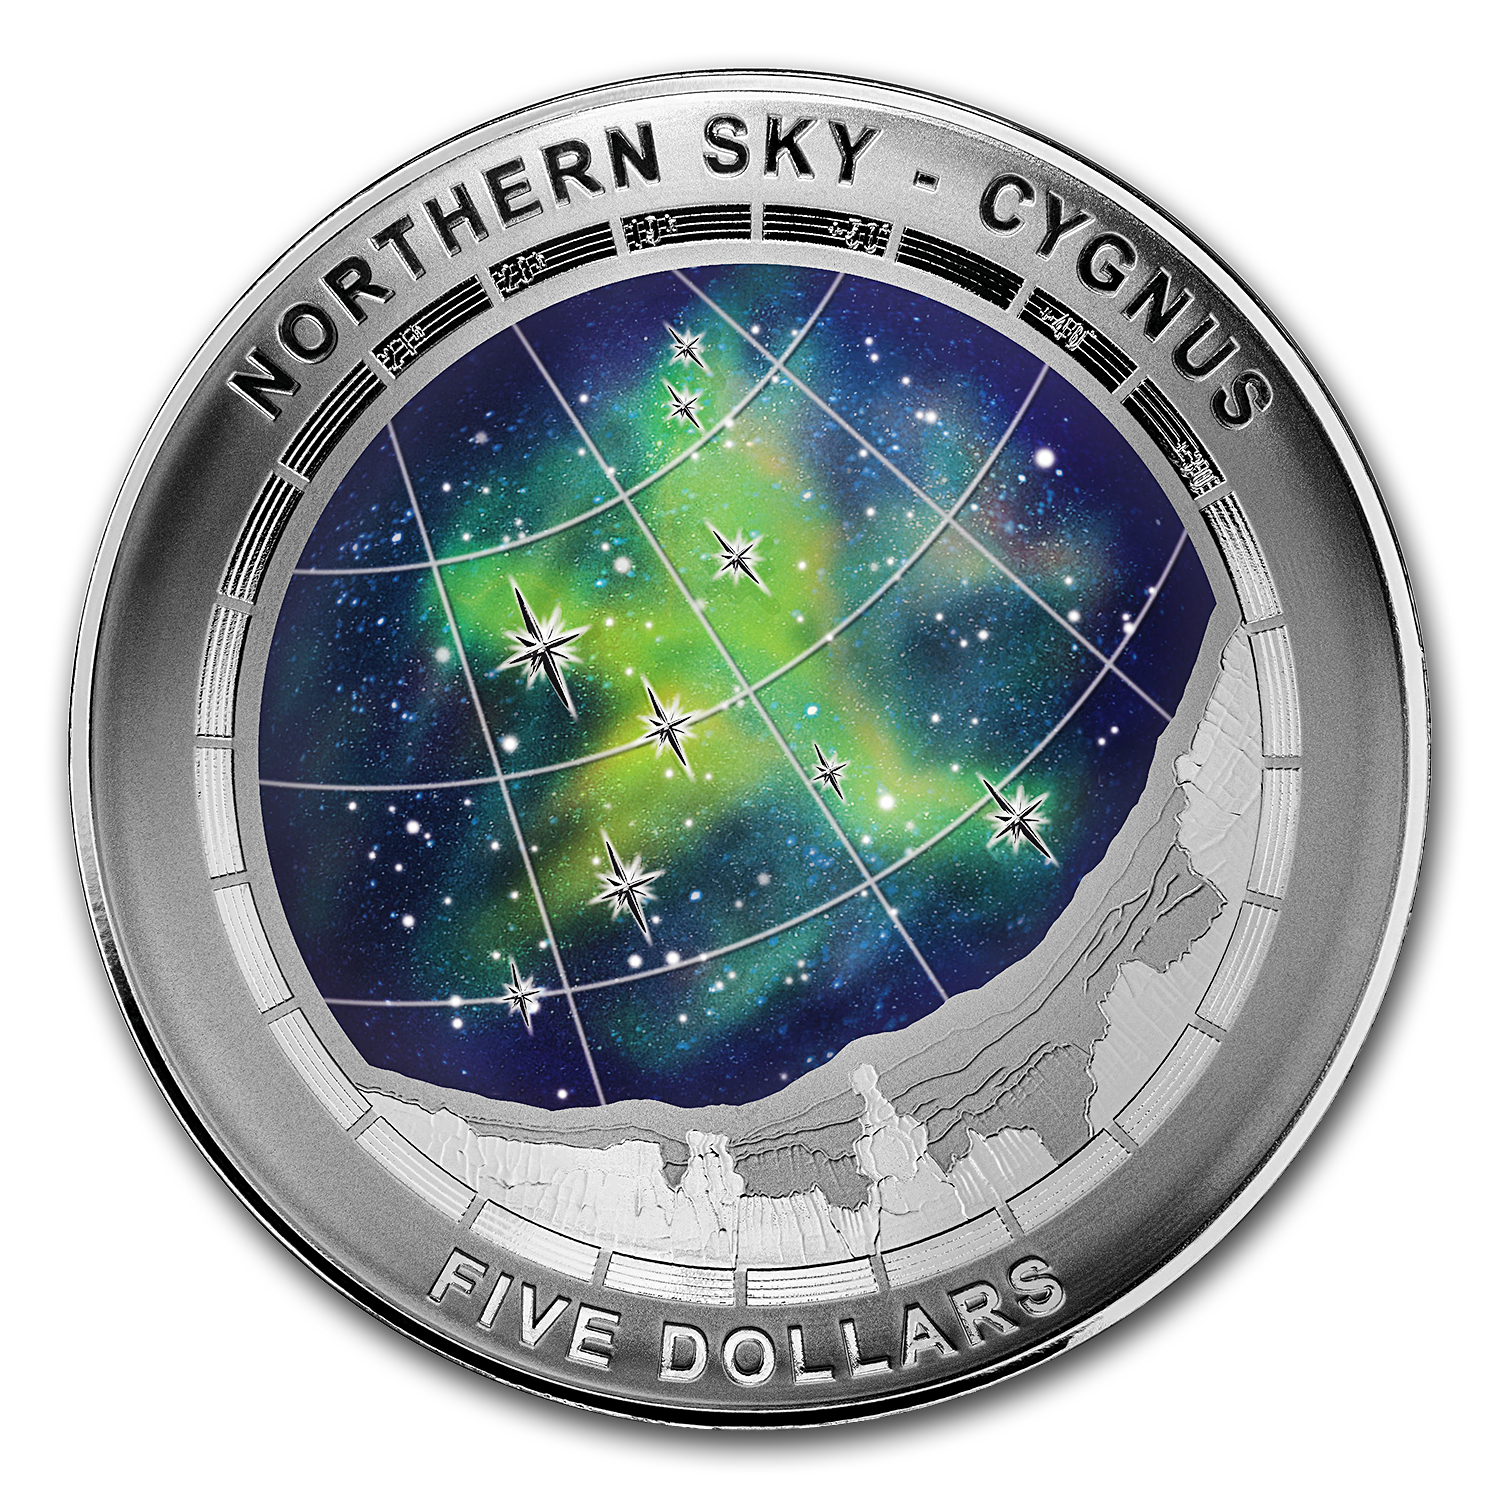 2016 Australia Silver $5 Color Domed Northern Sky Cygnus